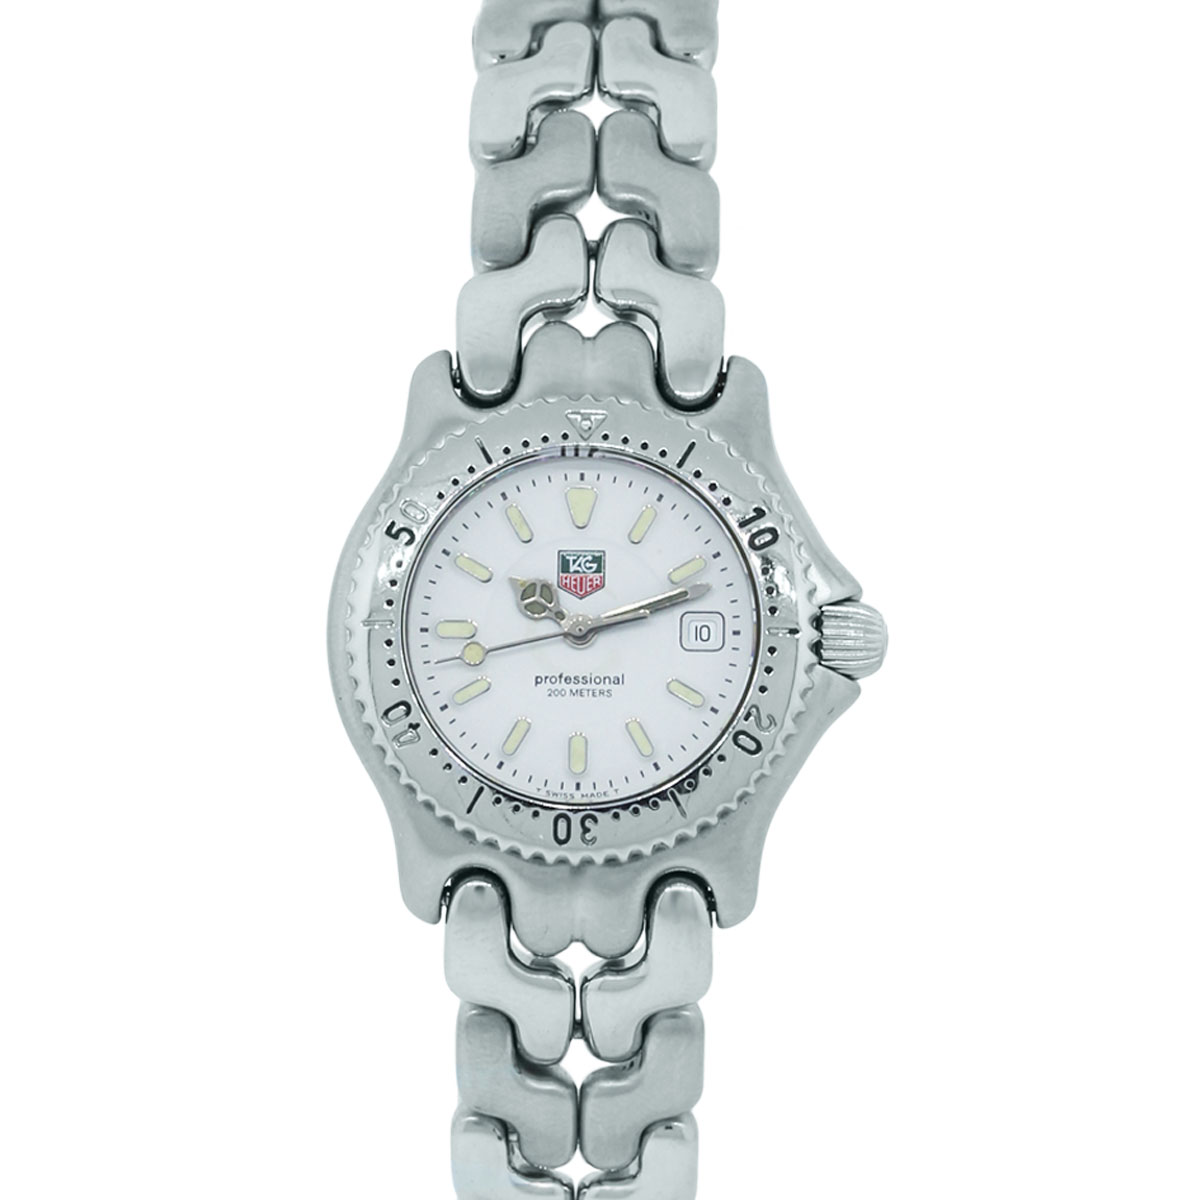 You are viewing this Tag Heuer WG1312-0 Professional Steel Ladies Watch!